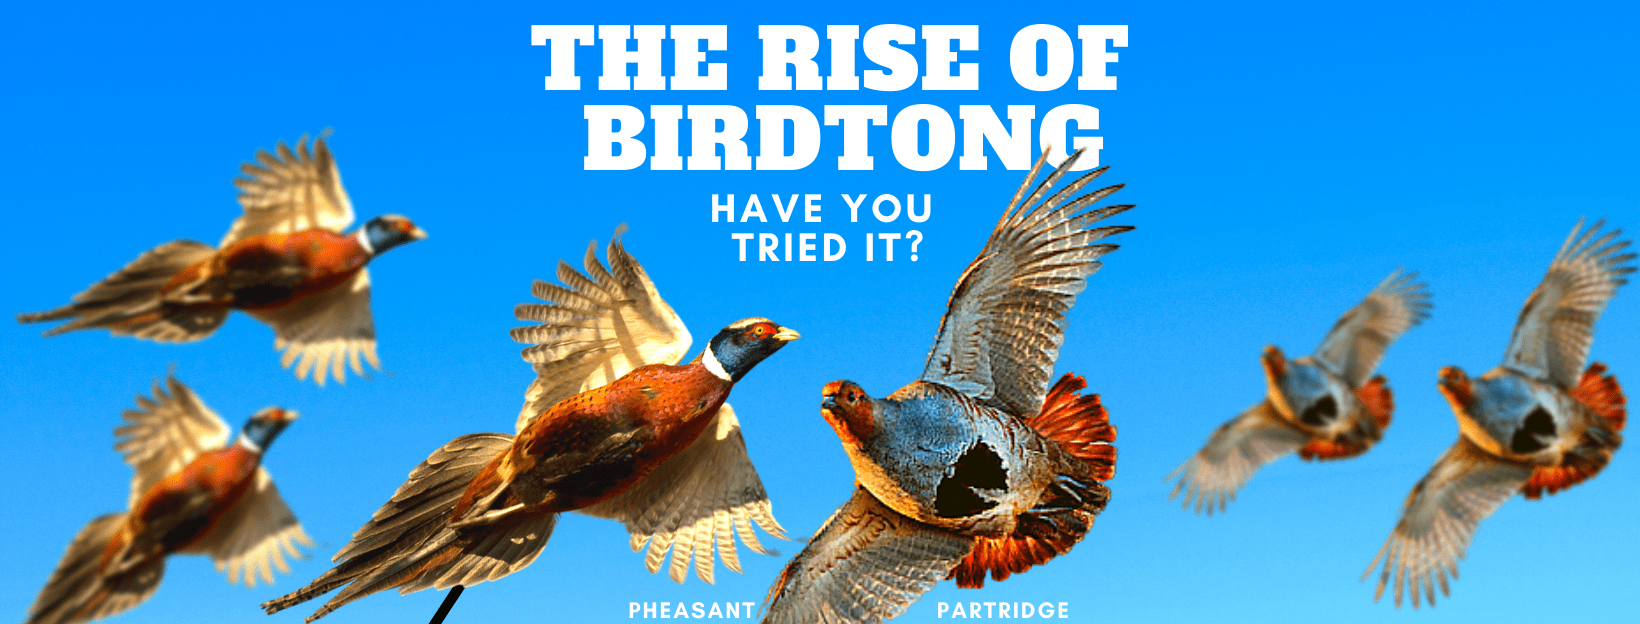 The rise of Pheasant game biltong, 4 reasons why you need to try